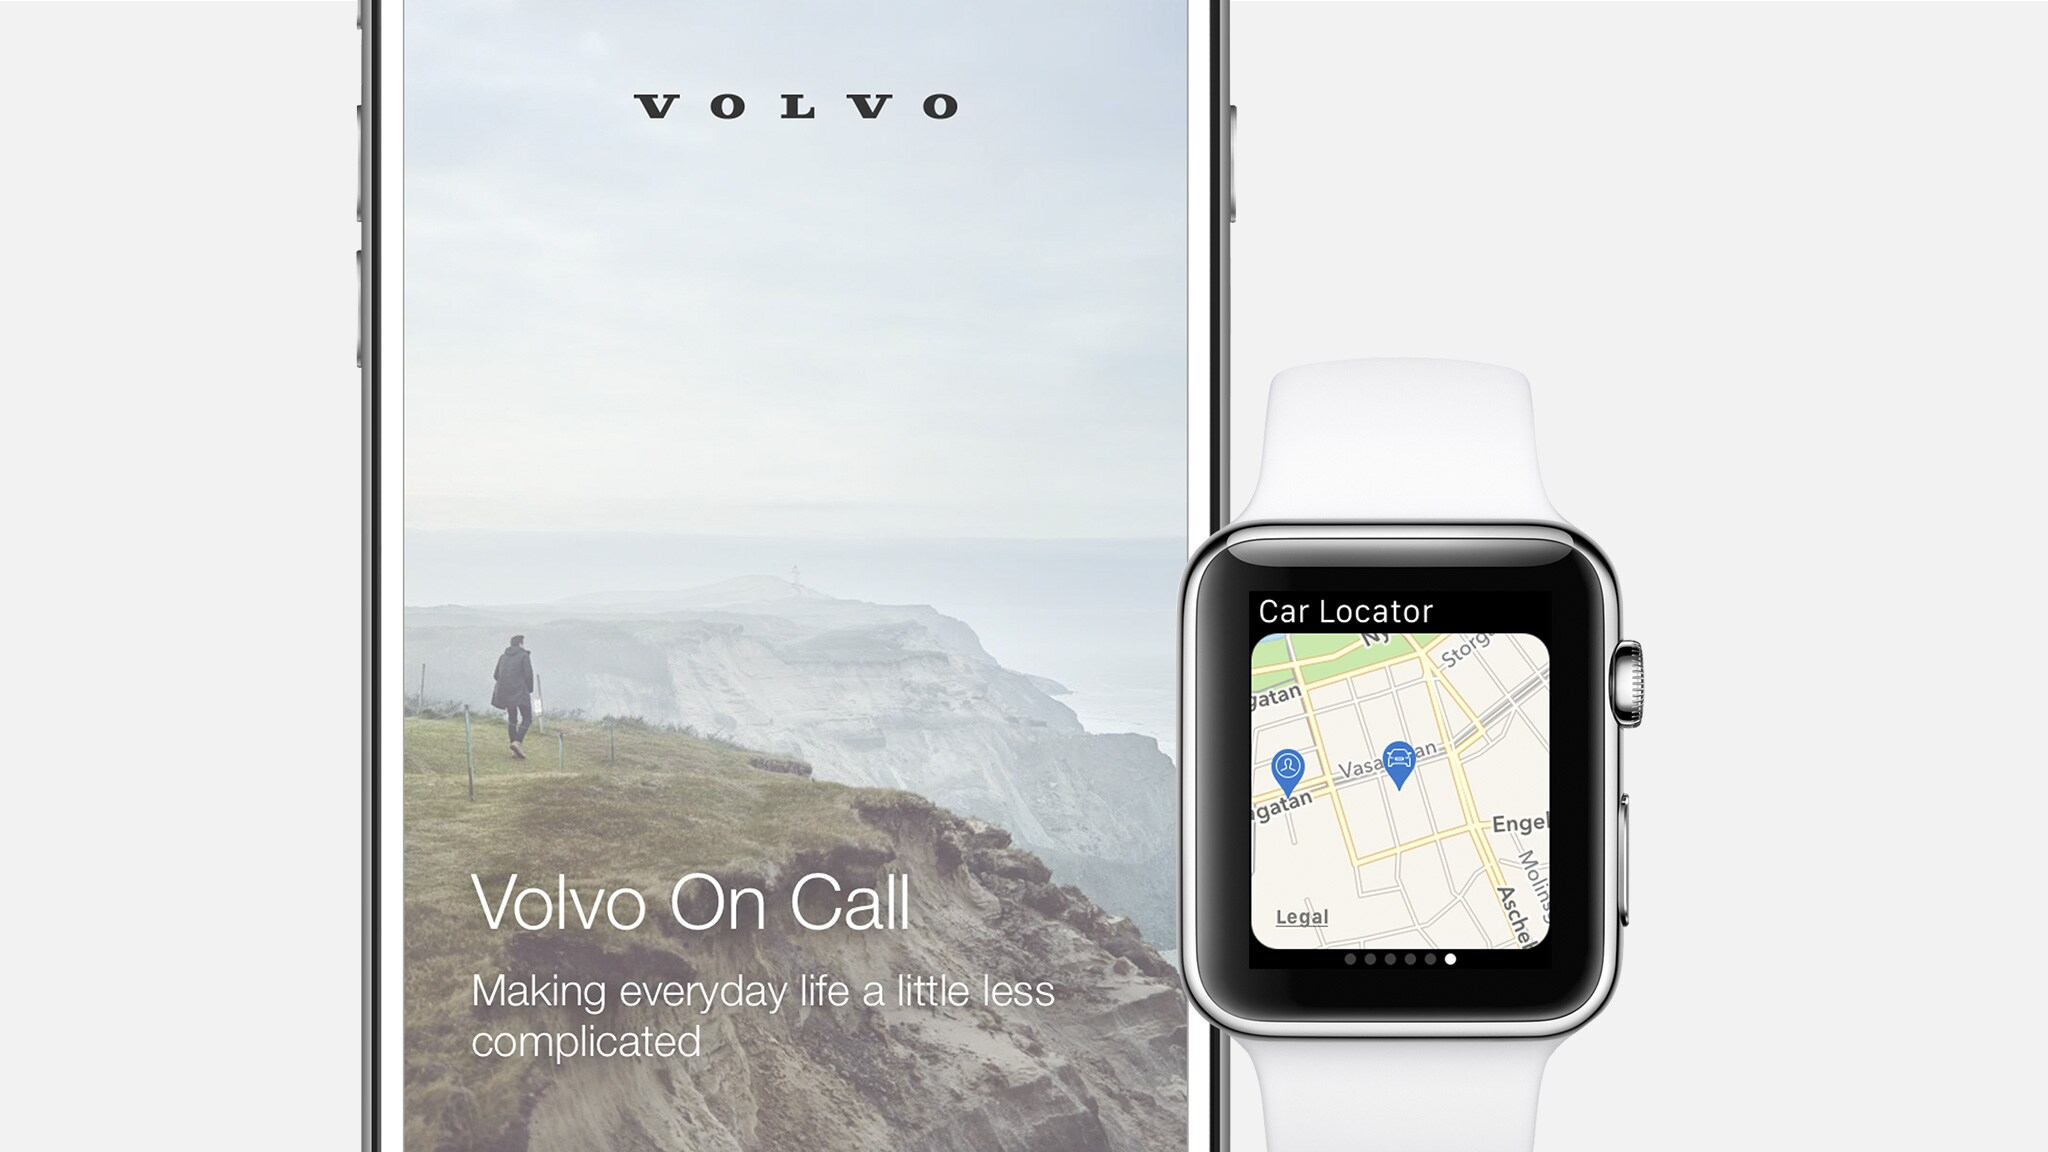 Application Volvo On Call